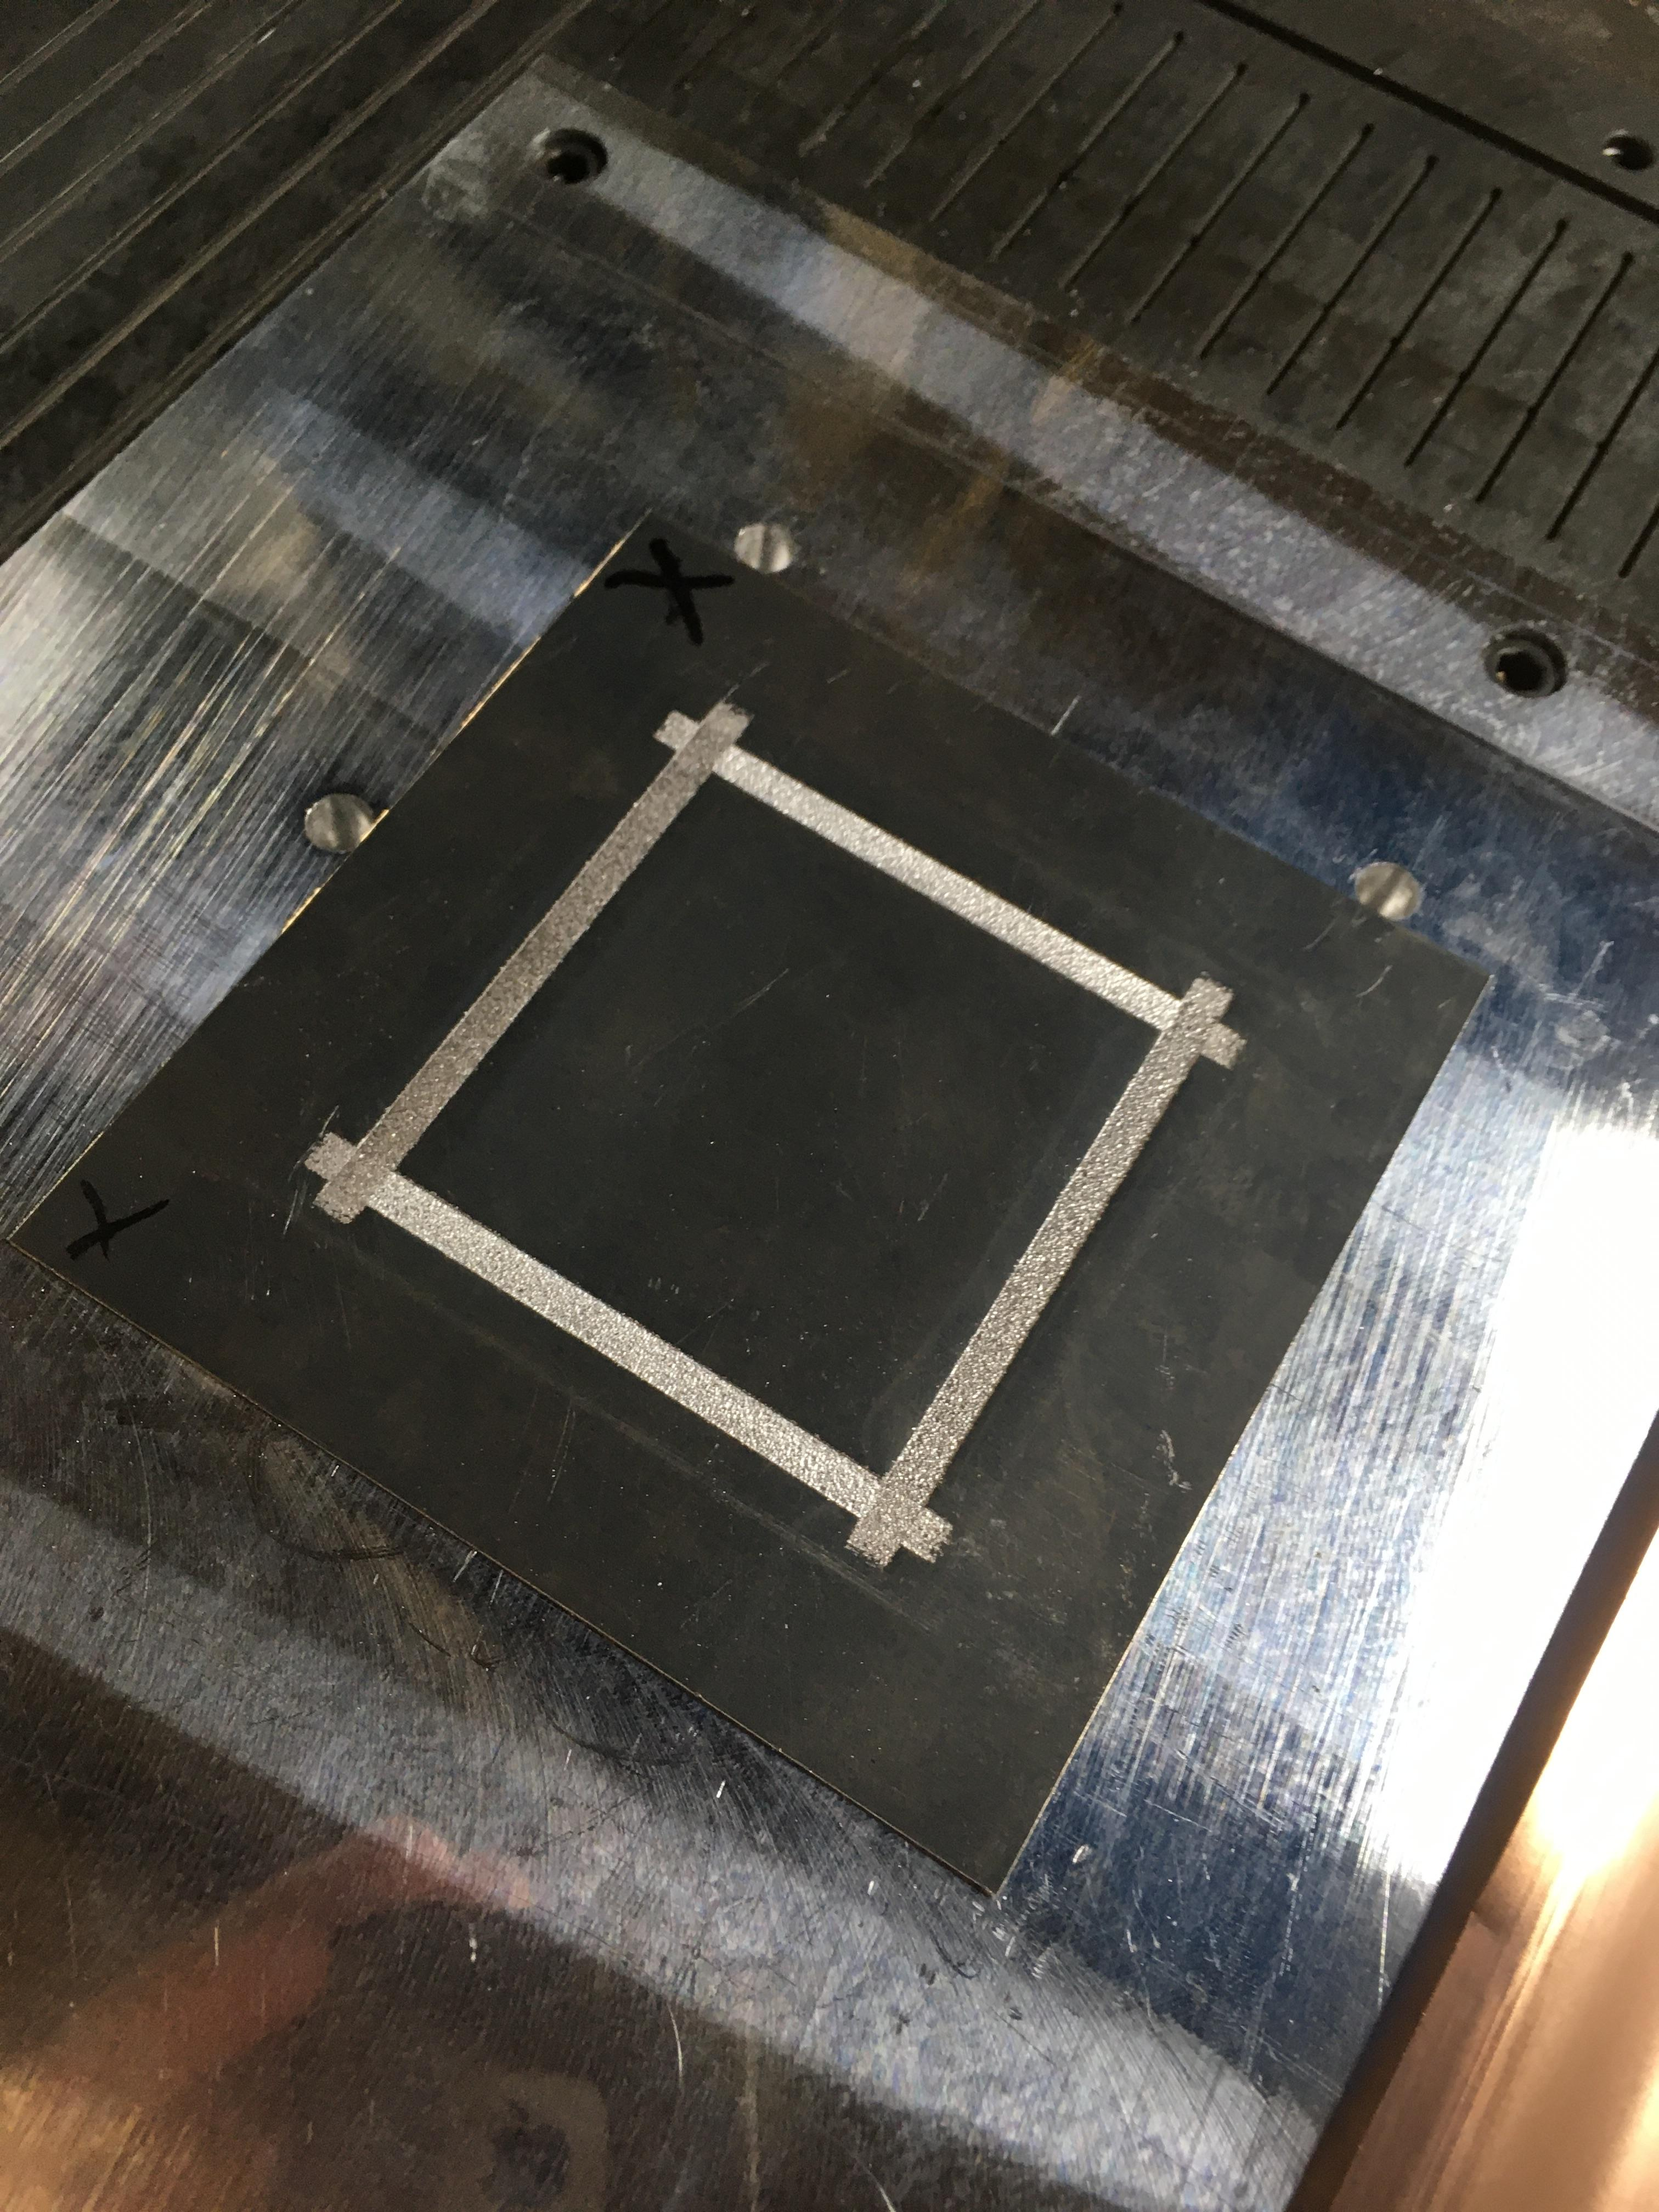 Four seam welds creating a hermetic seal on an aluminum foil pocket